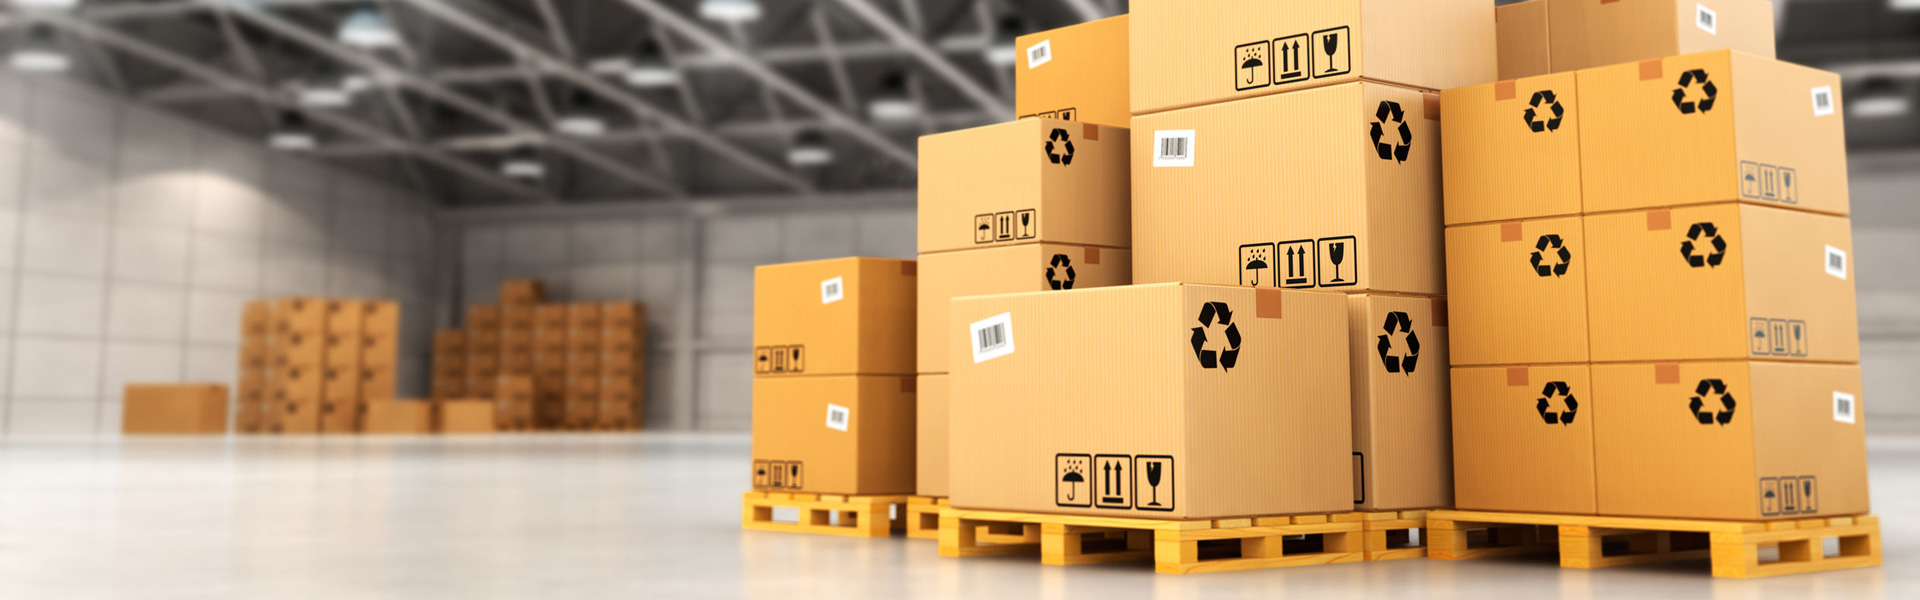 Packers and movers cost in bangalore dating 10